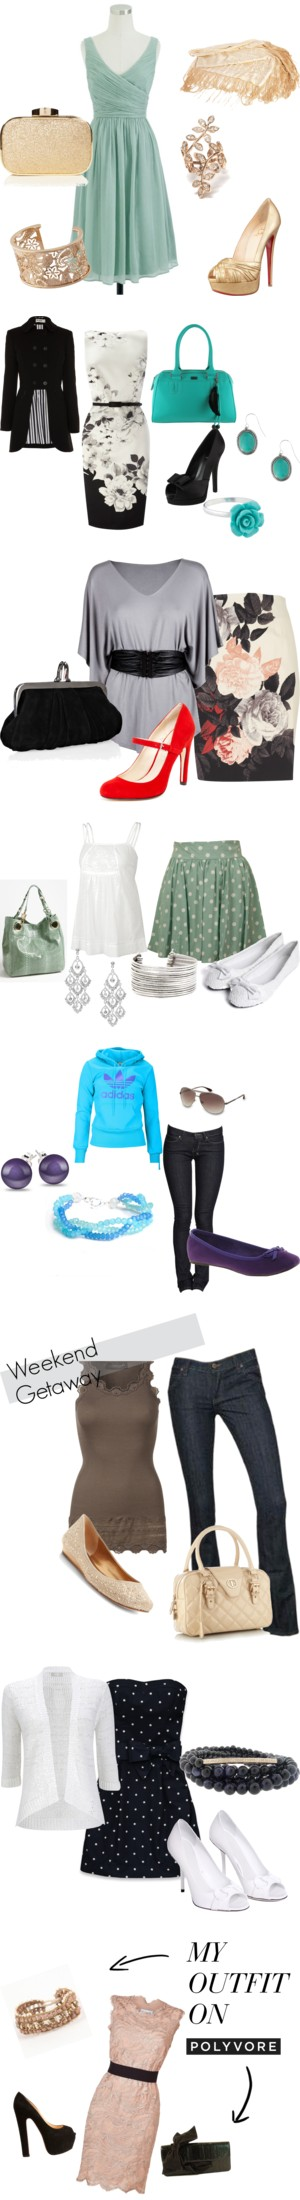 """My Collection"" by patricecox on Polyvore"